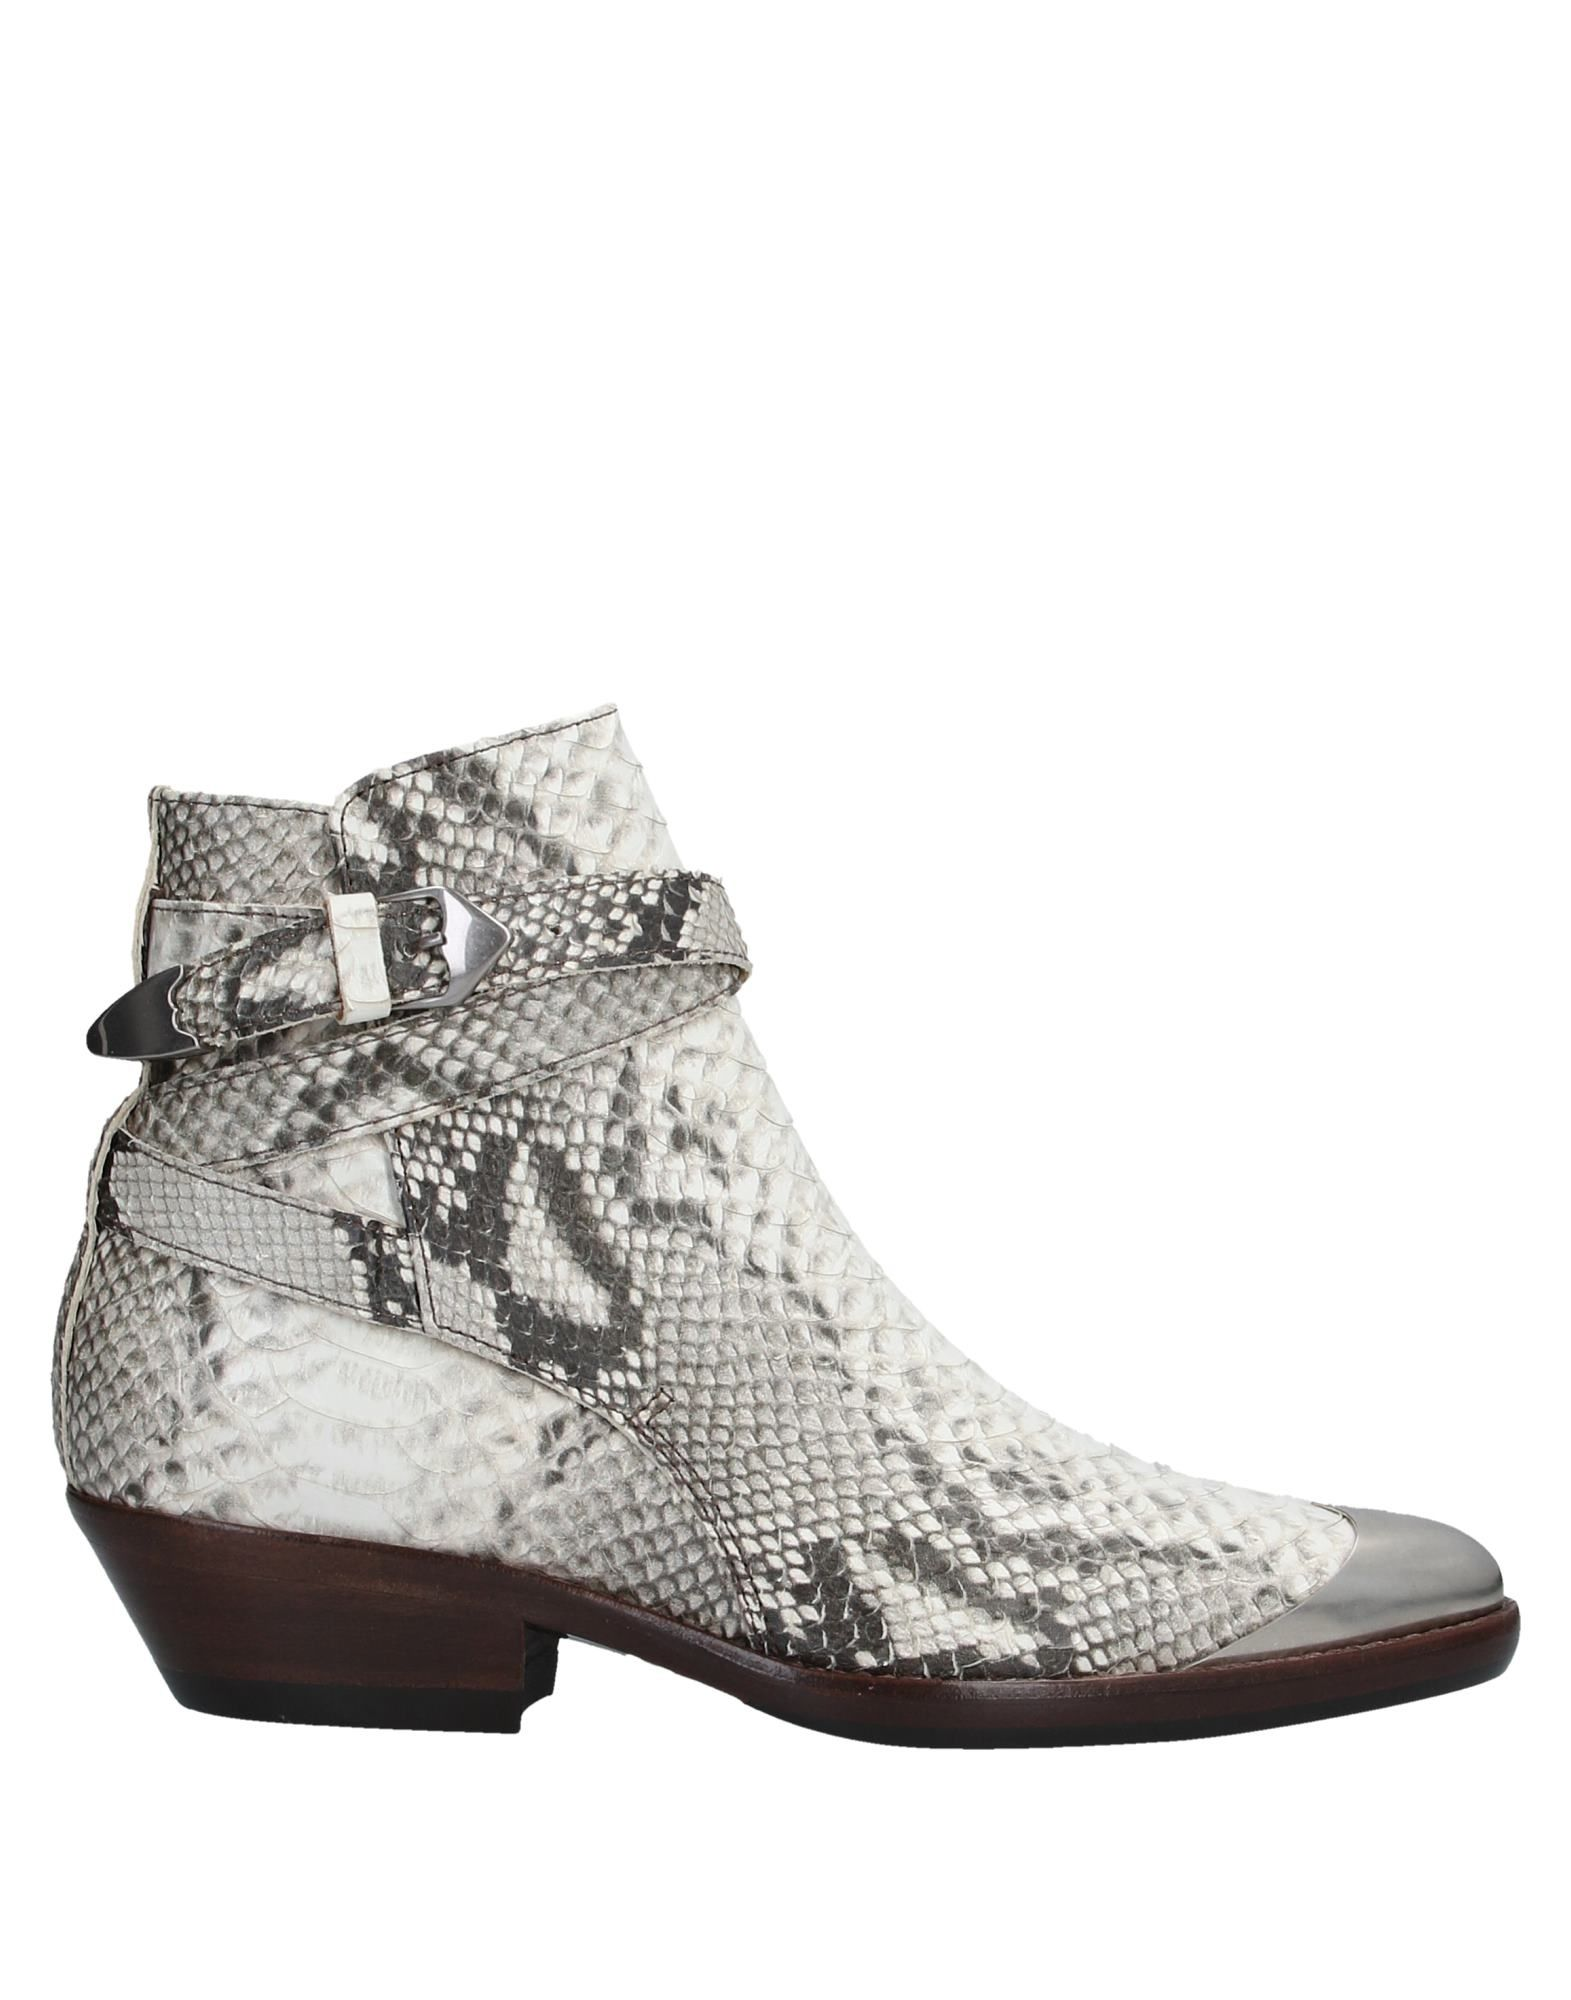 ISABEL MARANT Ankle boots. leather, snakeskin print, no appliqués, multicolor pattern, buckle fastening, narrow toeline, cuban heel, leather lining, rubber sole, small sized, contains non-textile parts of animal origin. Soft Leather